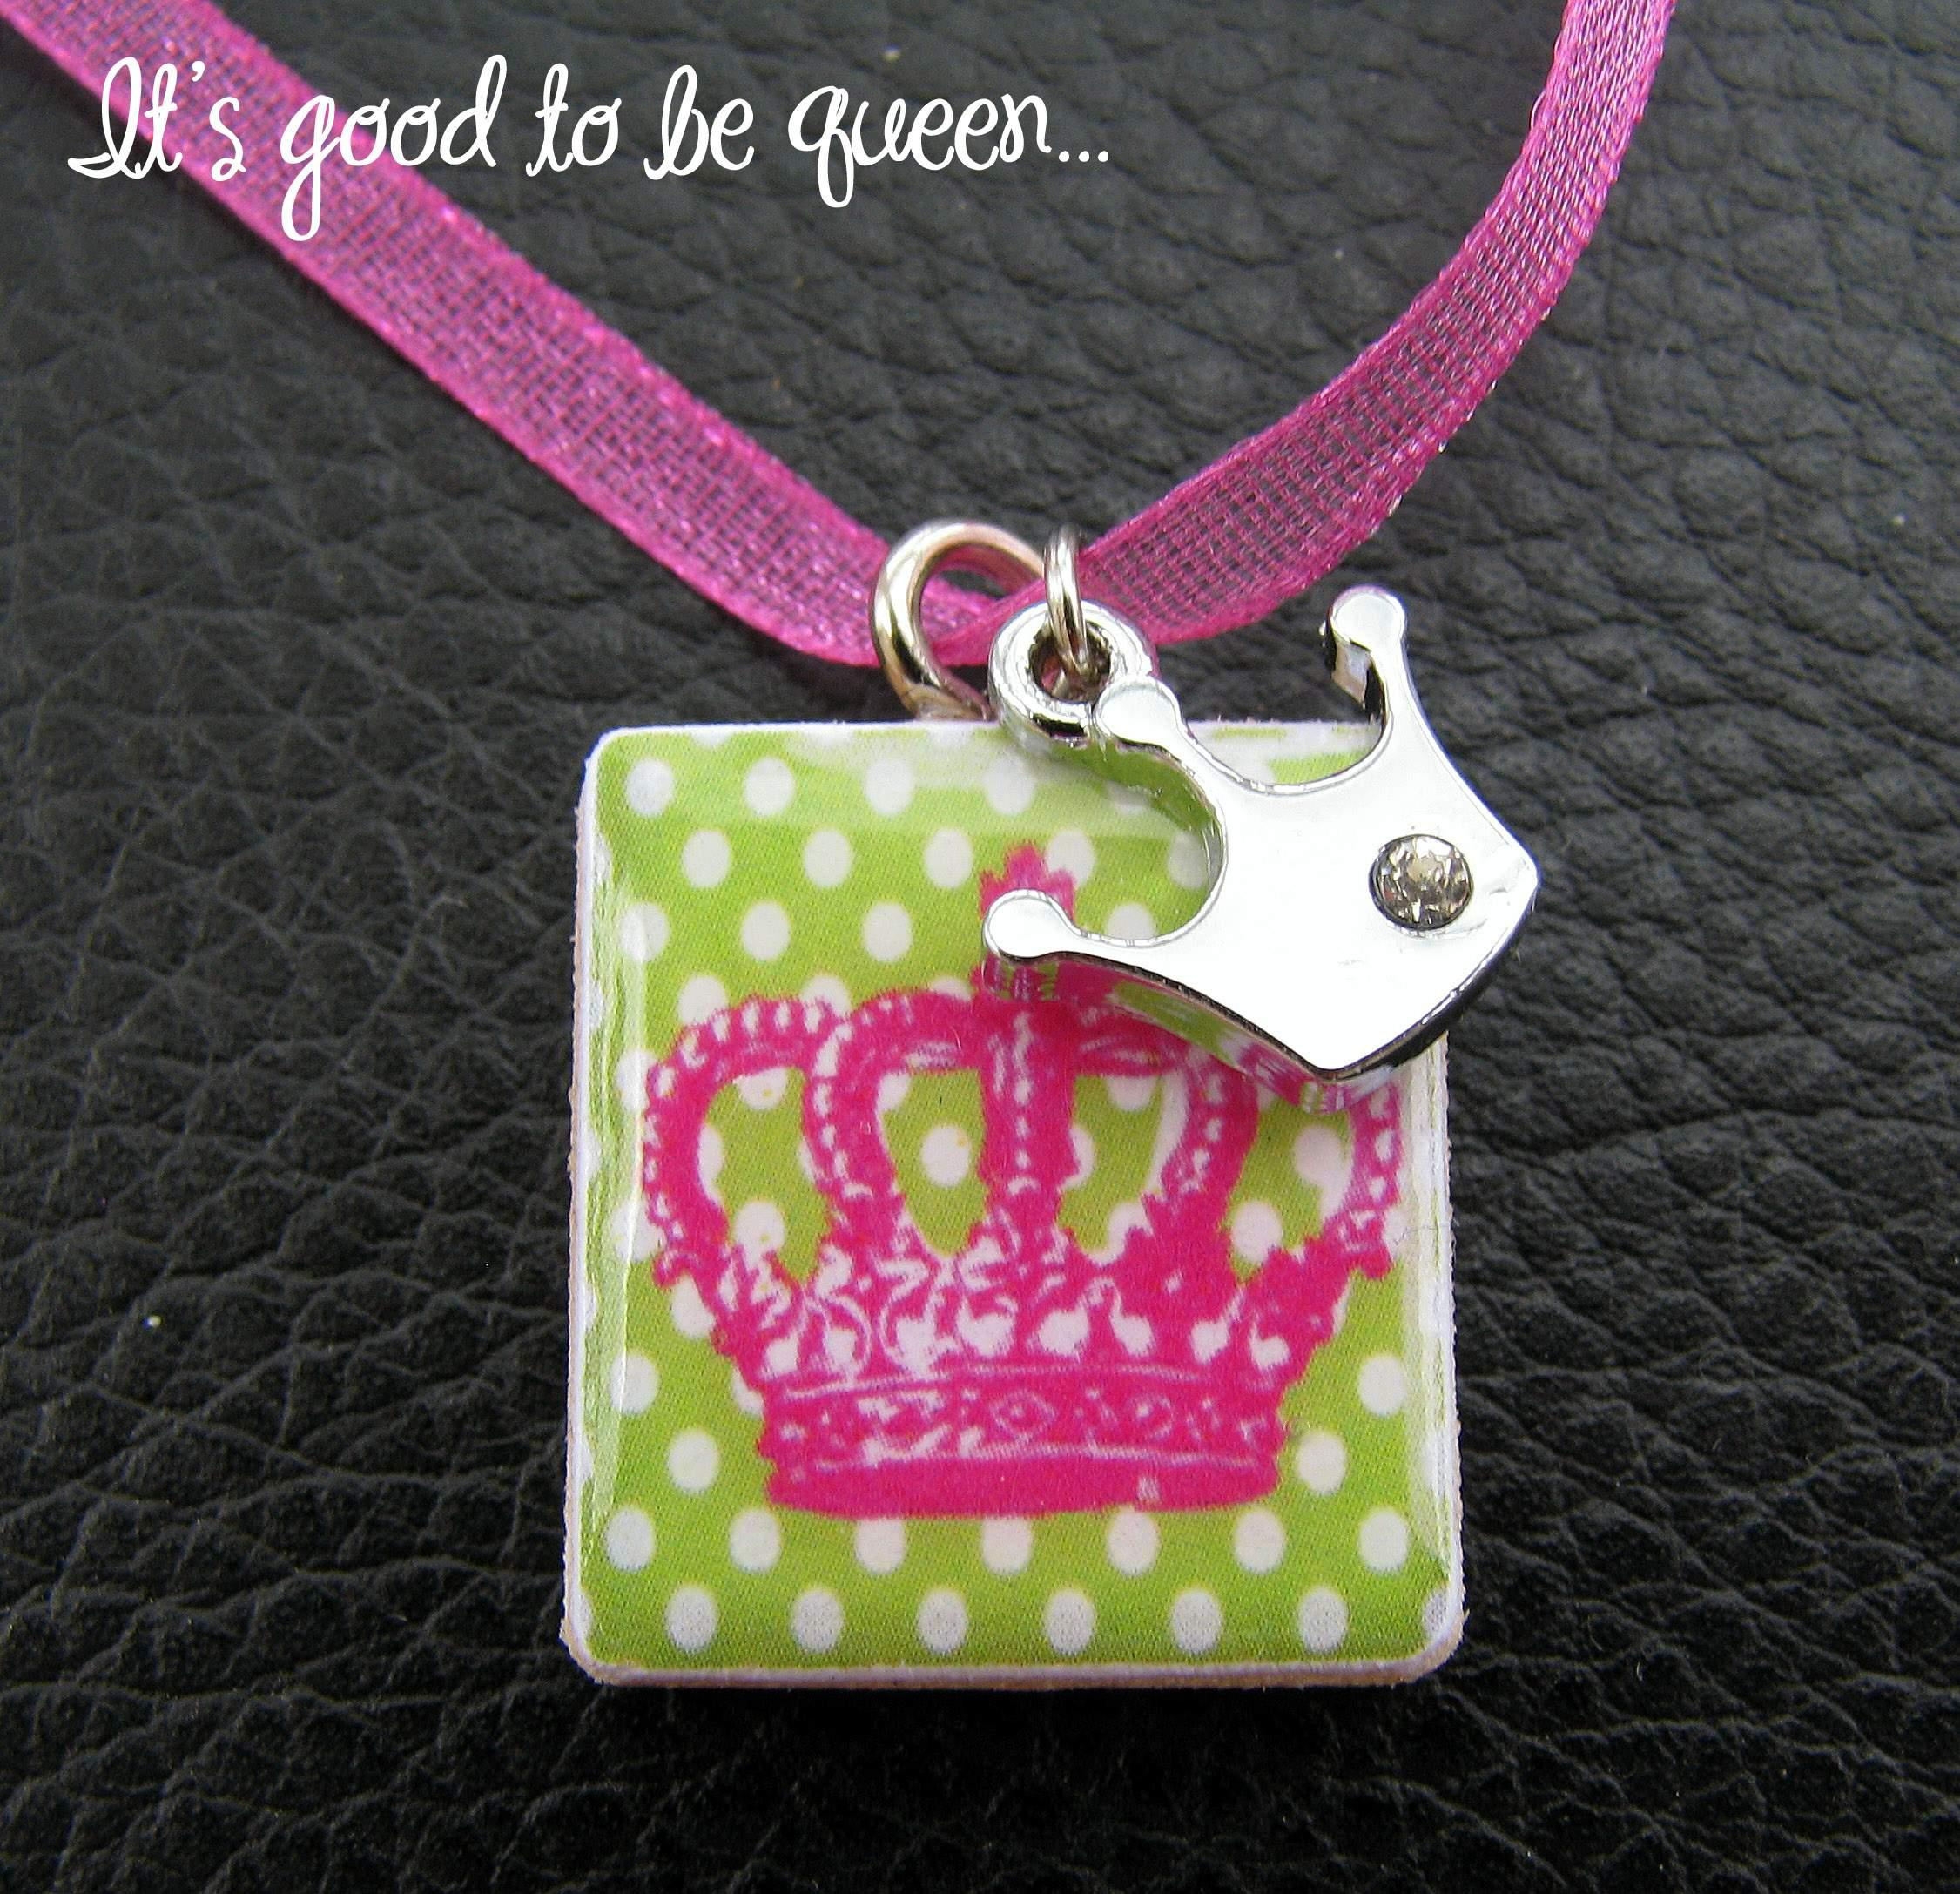 lulus-tiles-queen-tile-necklace.jpg